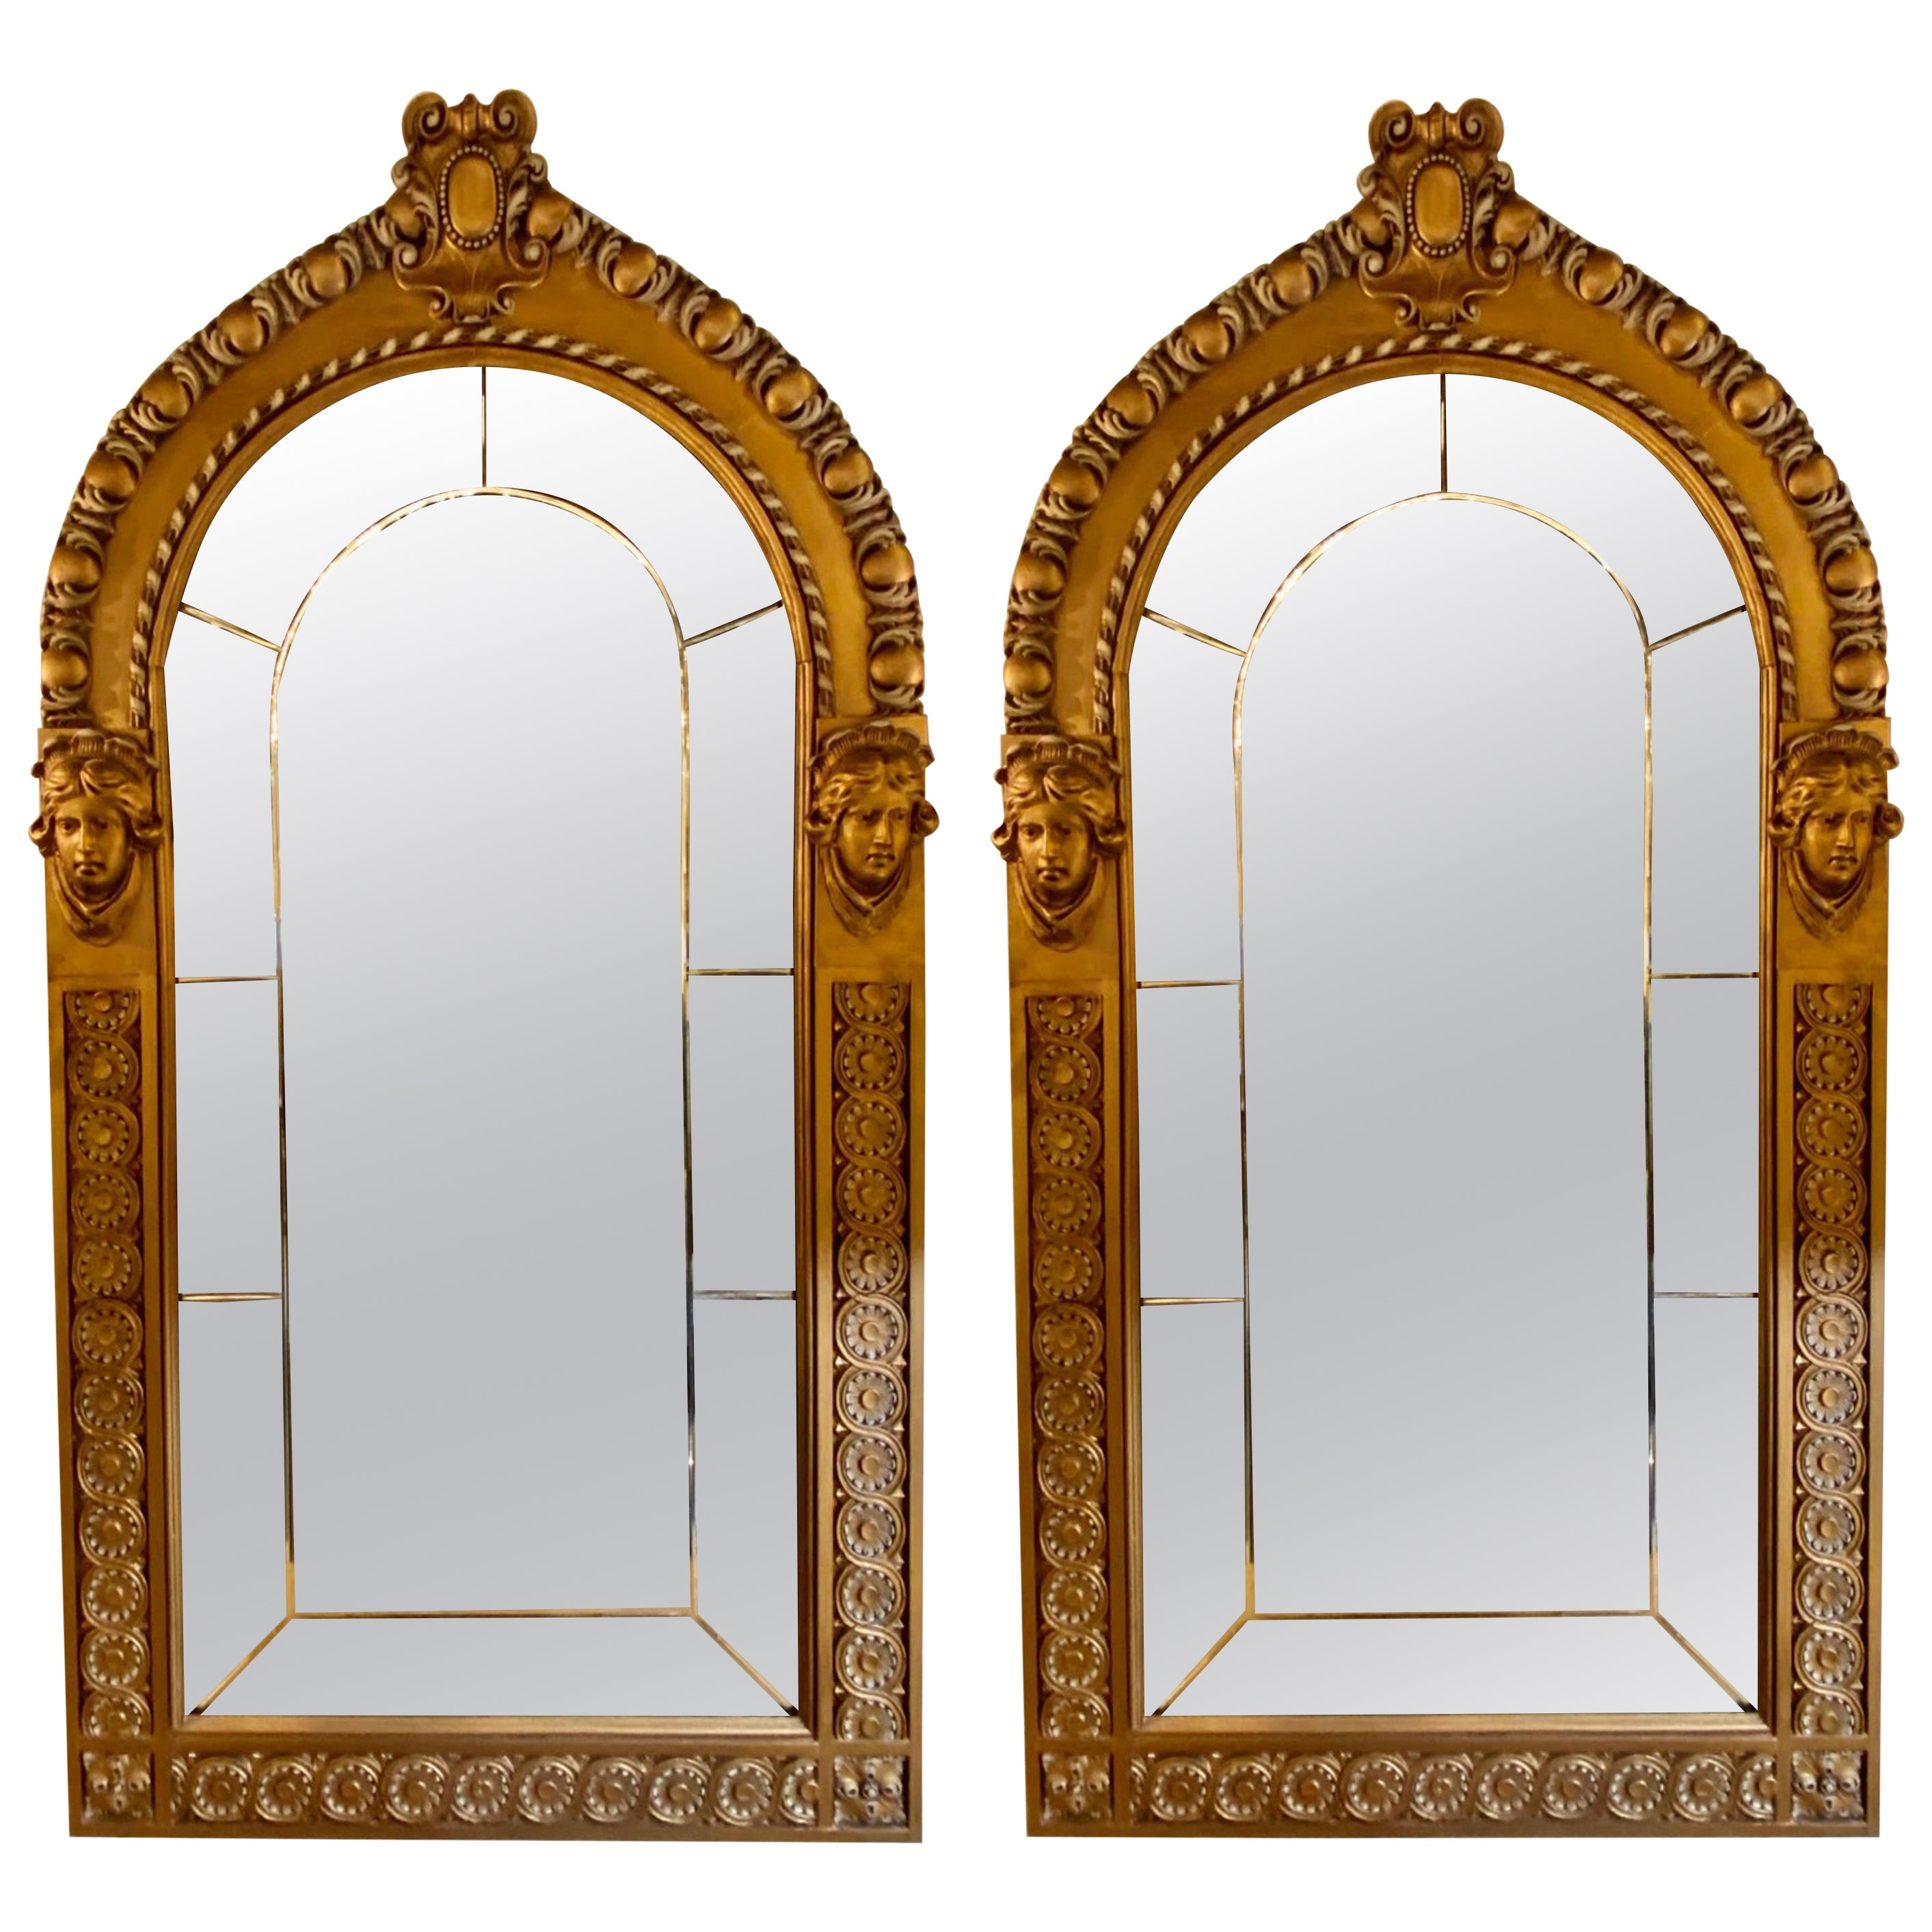 Pair of Neoclassical Wall or Console Mirrors, Giltwood Carved